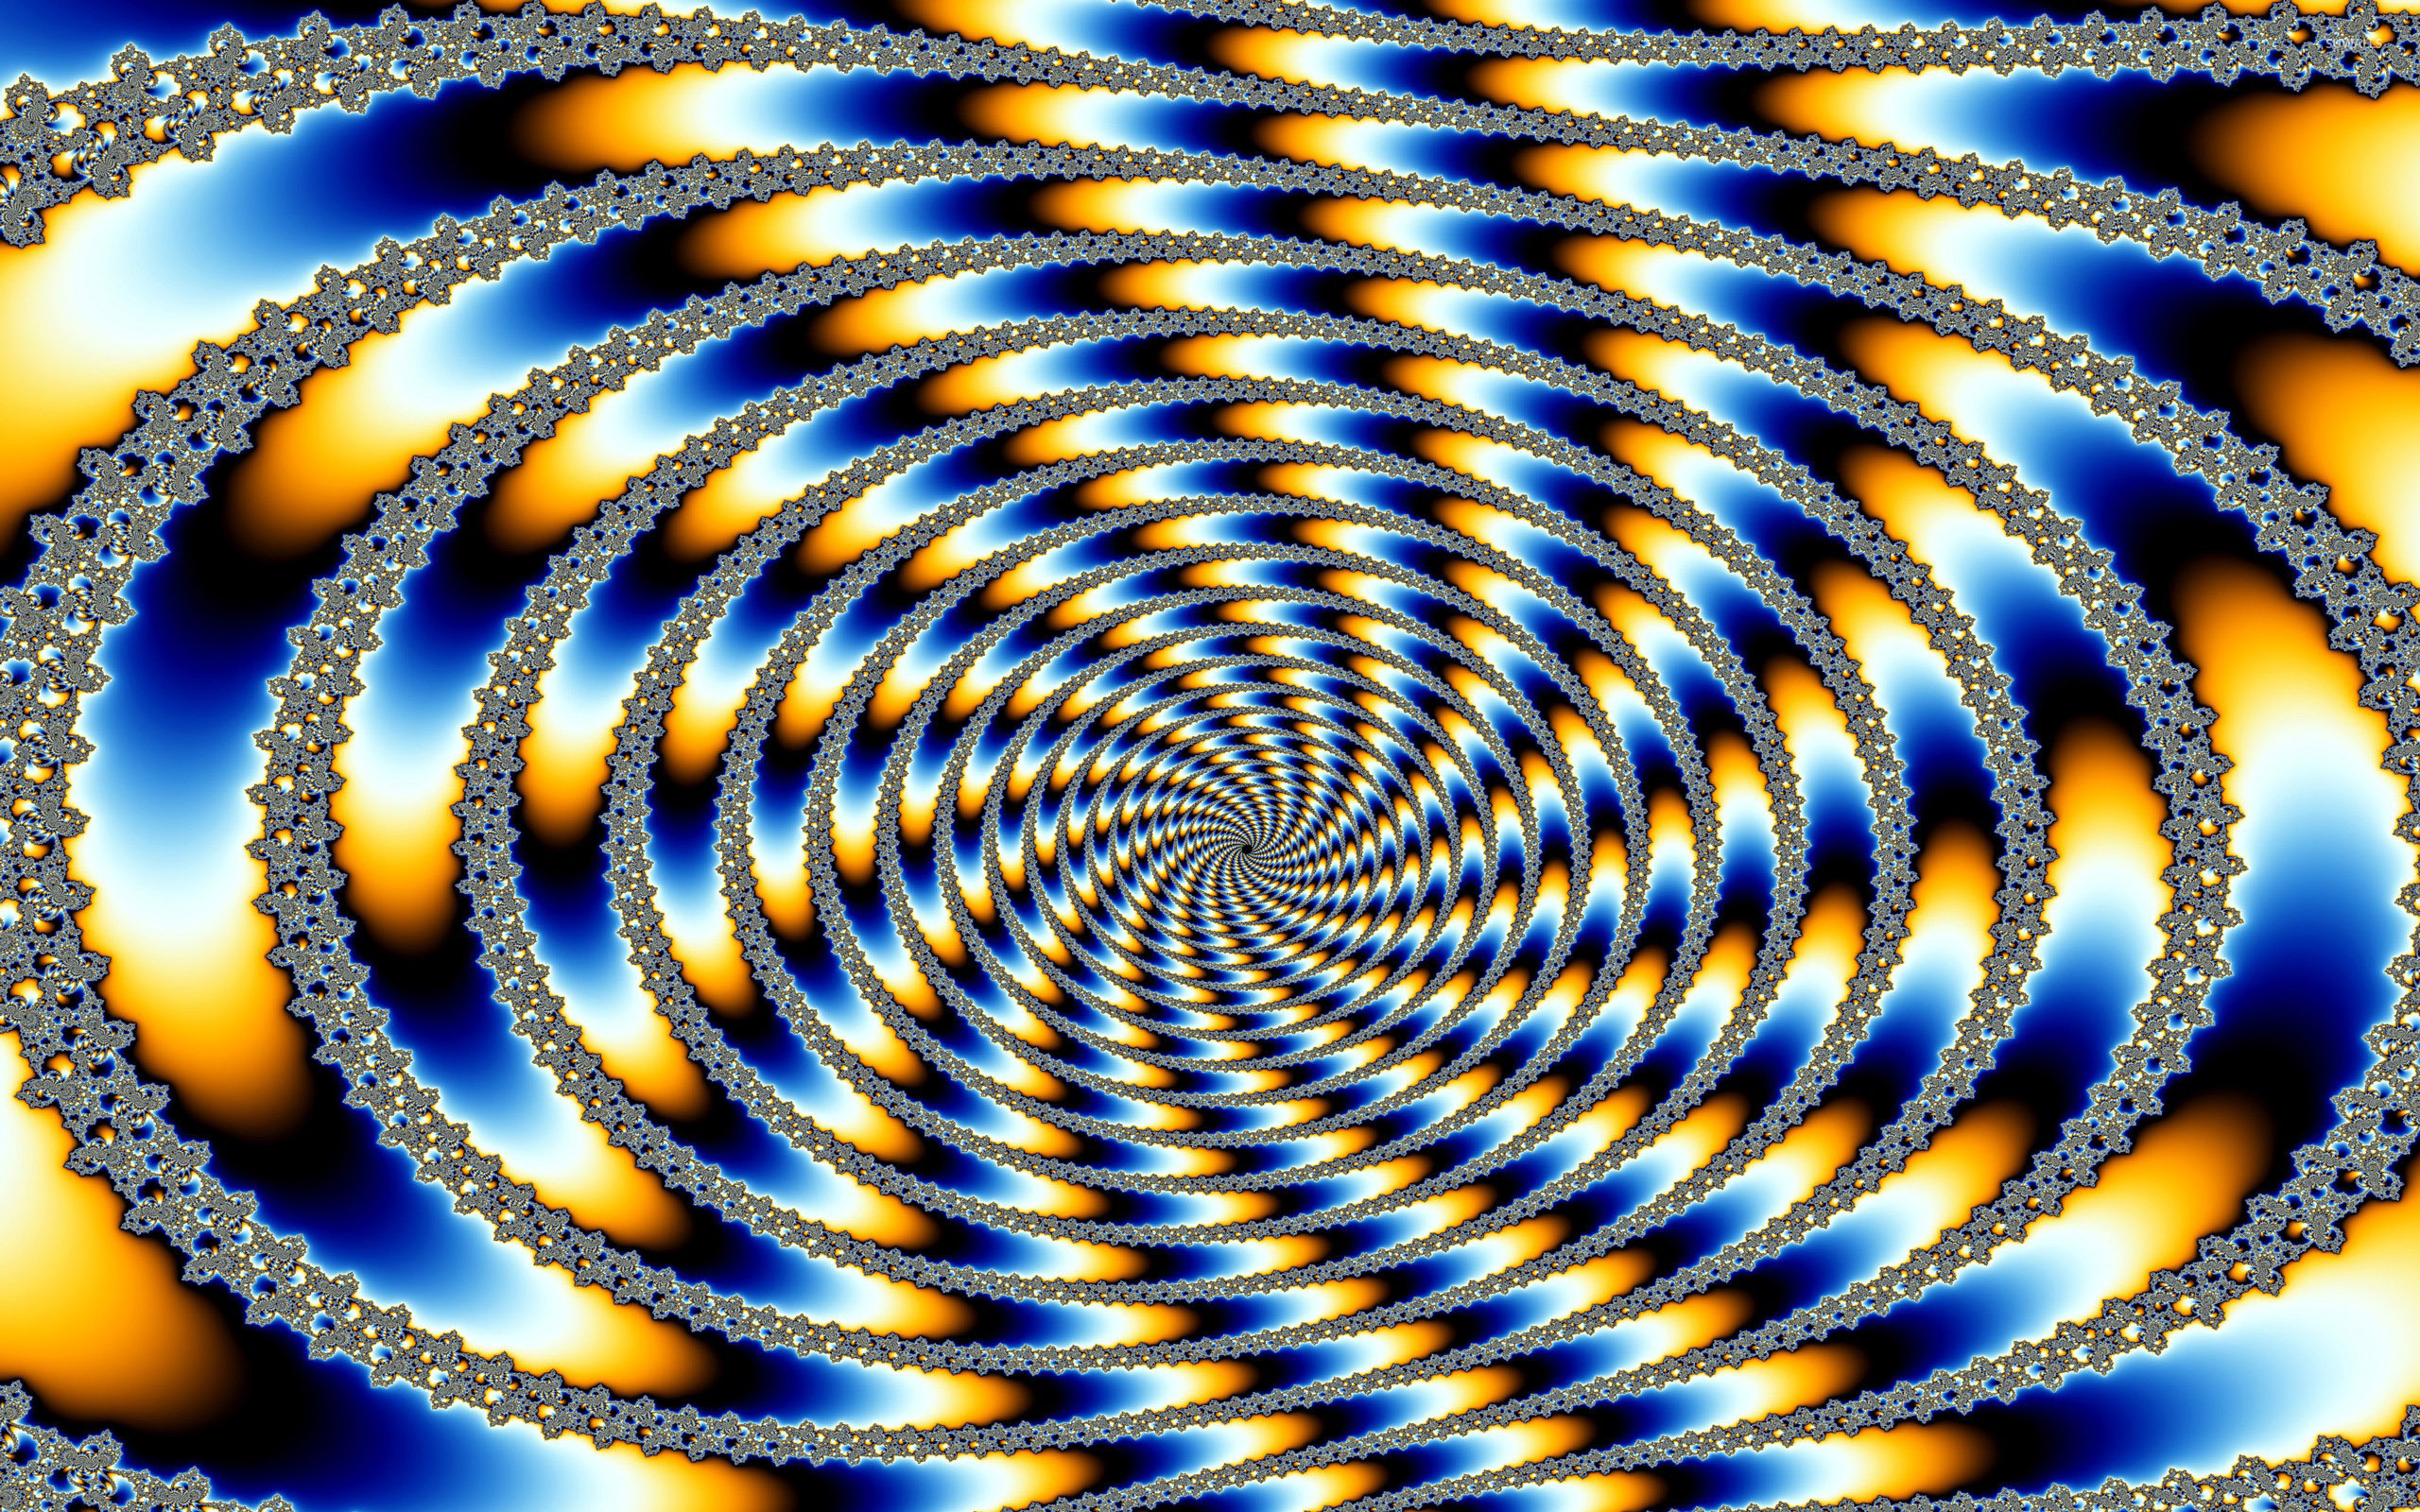 Wallpaper download abyss - Hypnotic Fractal Abyss Wallpaper